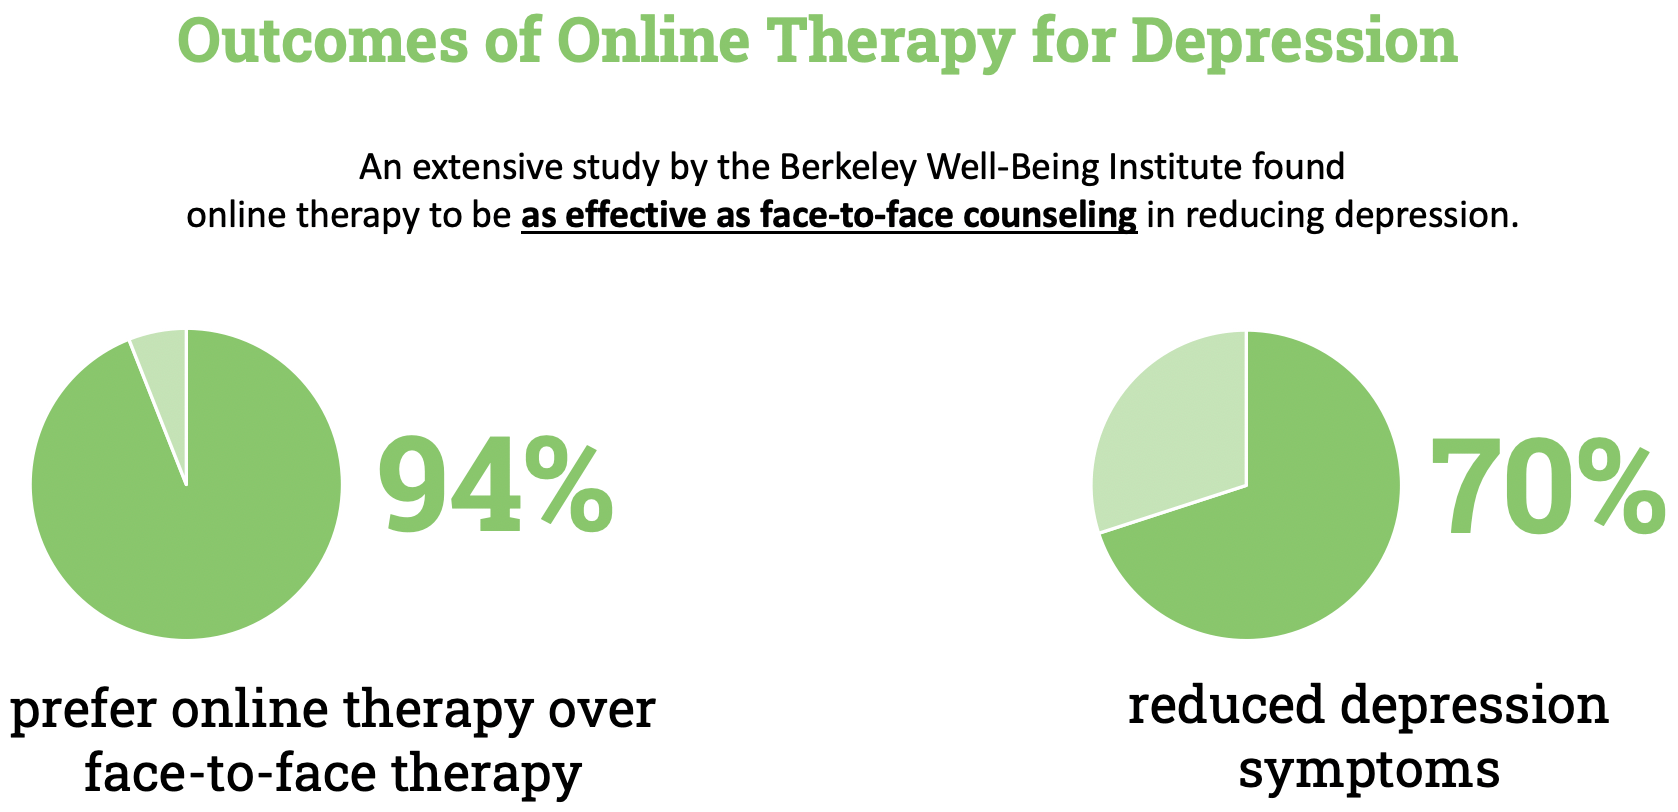 An extensive study by the Berkeley Well-Being Institute found online therapy to be as effective as face-to-face counseling in reducing depression.